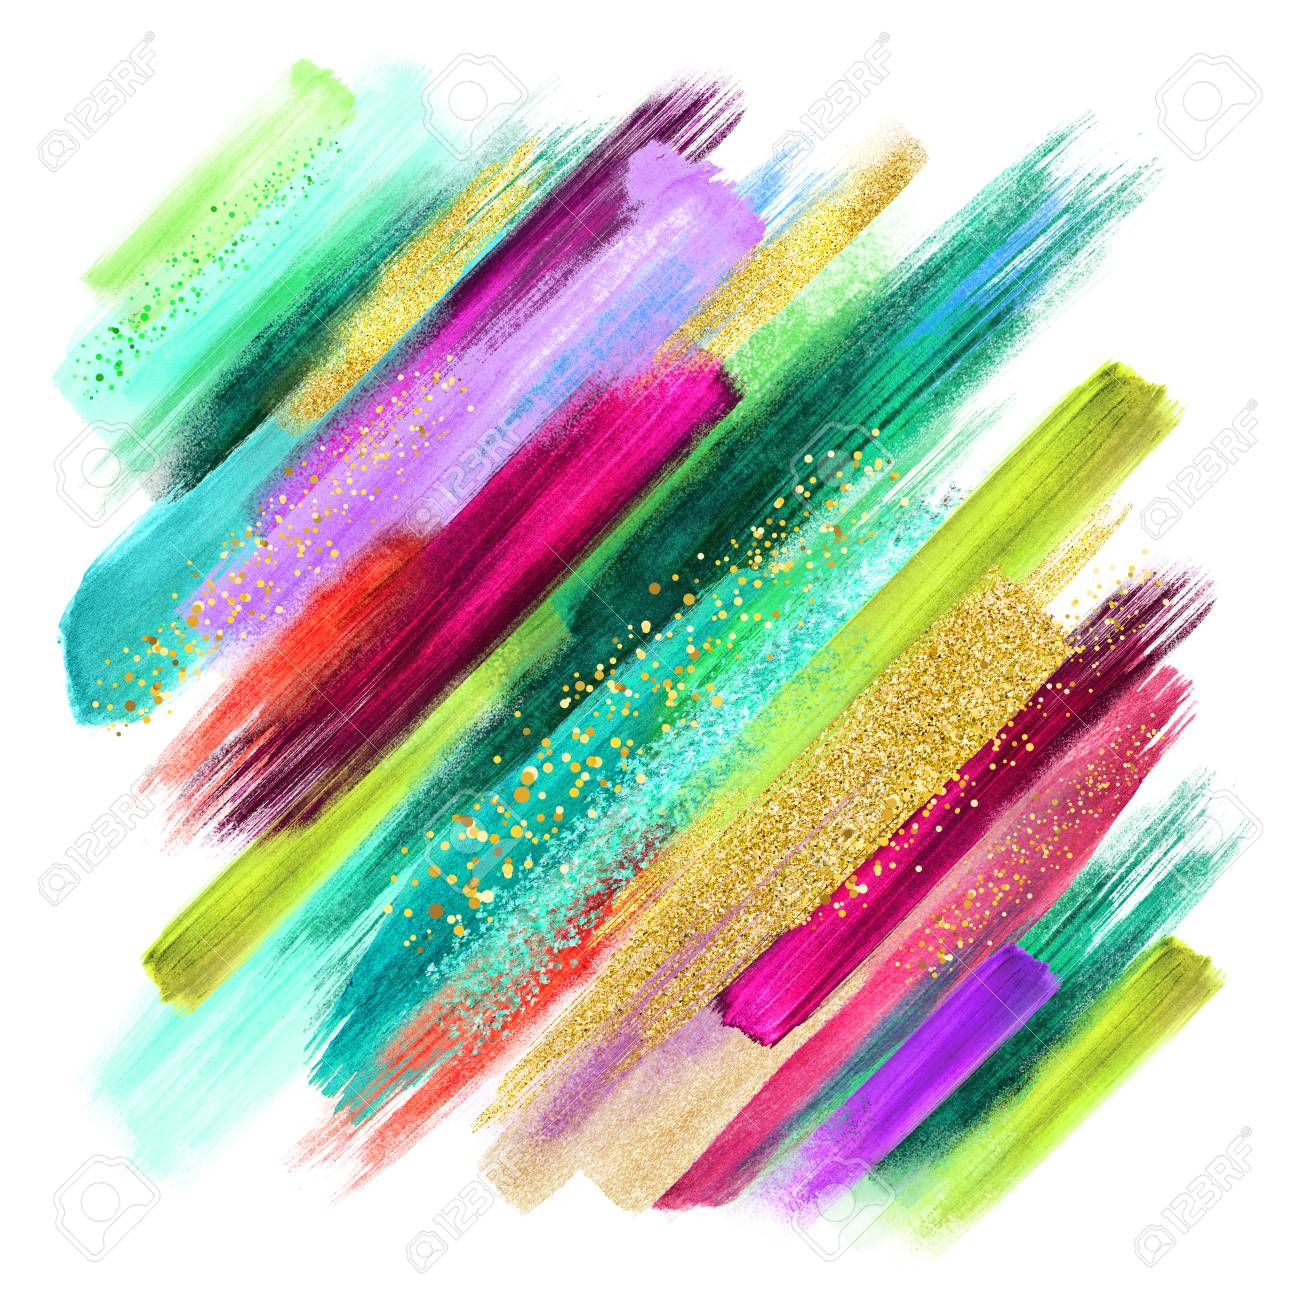 Emerald Green Fuchsia Gold Abstract Watercolor Brush Strokes Isolated On White Creative Illustration Artistic Color Palette Boho